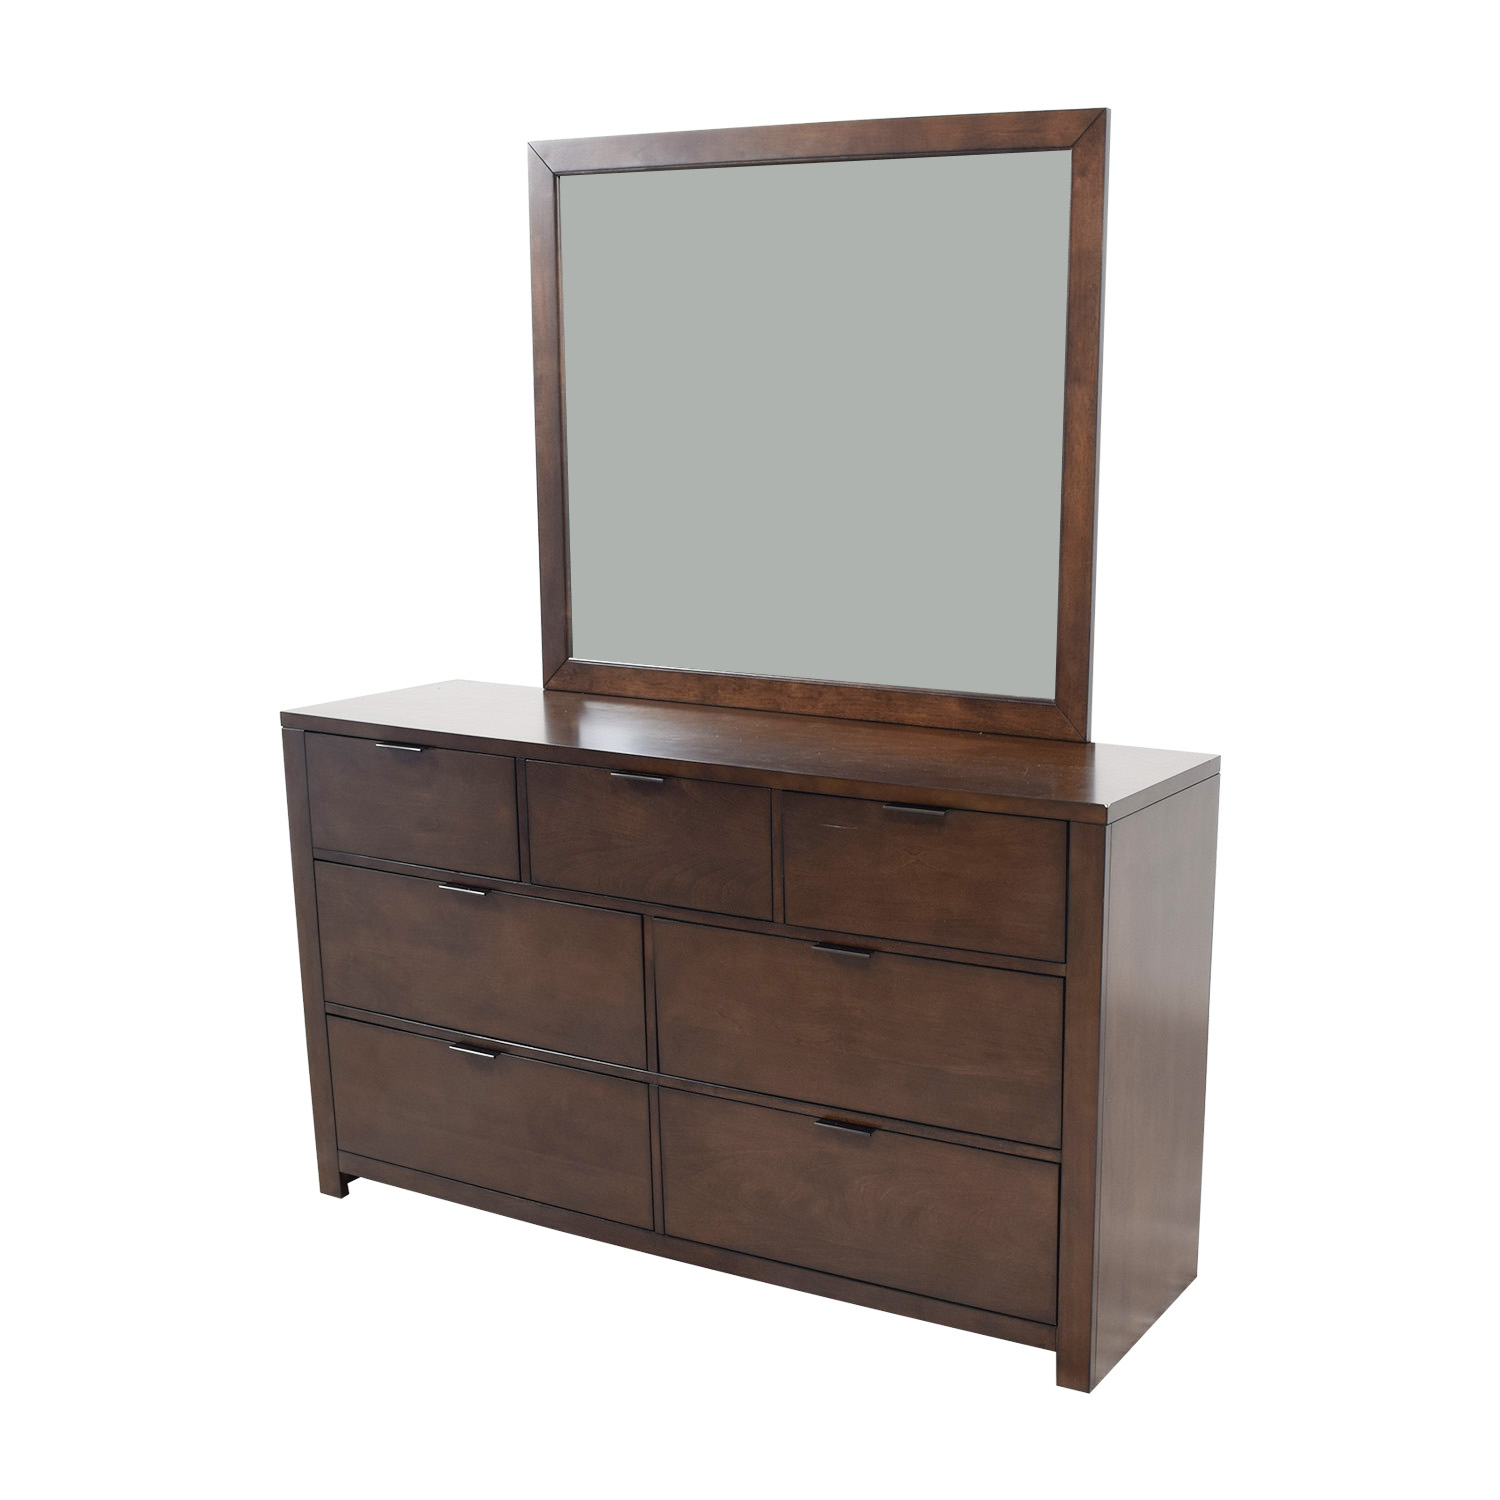 buy Home Meridian Home Meridian Wood Seven-Drawer Dresser with Mirror online